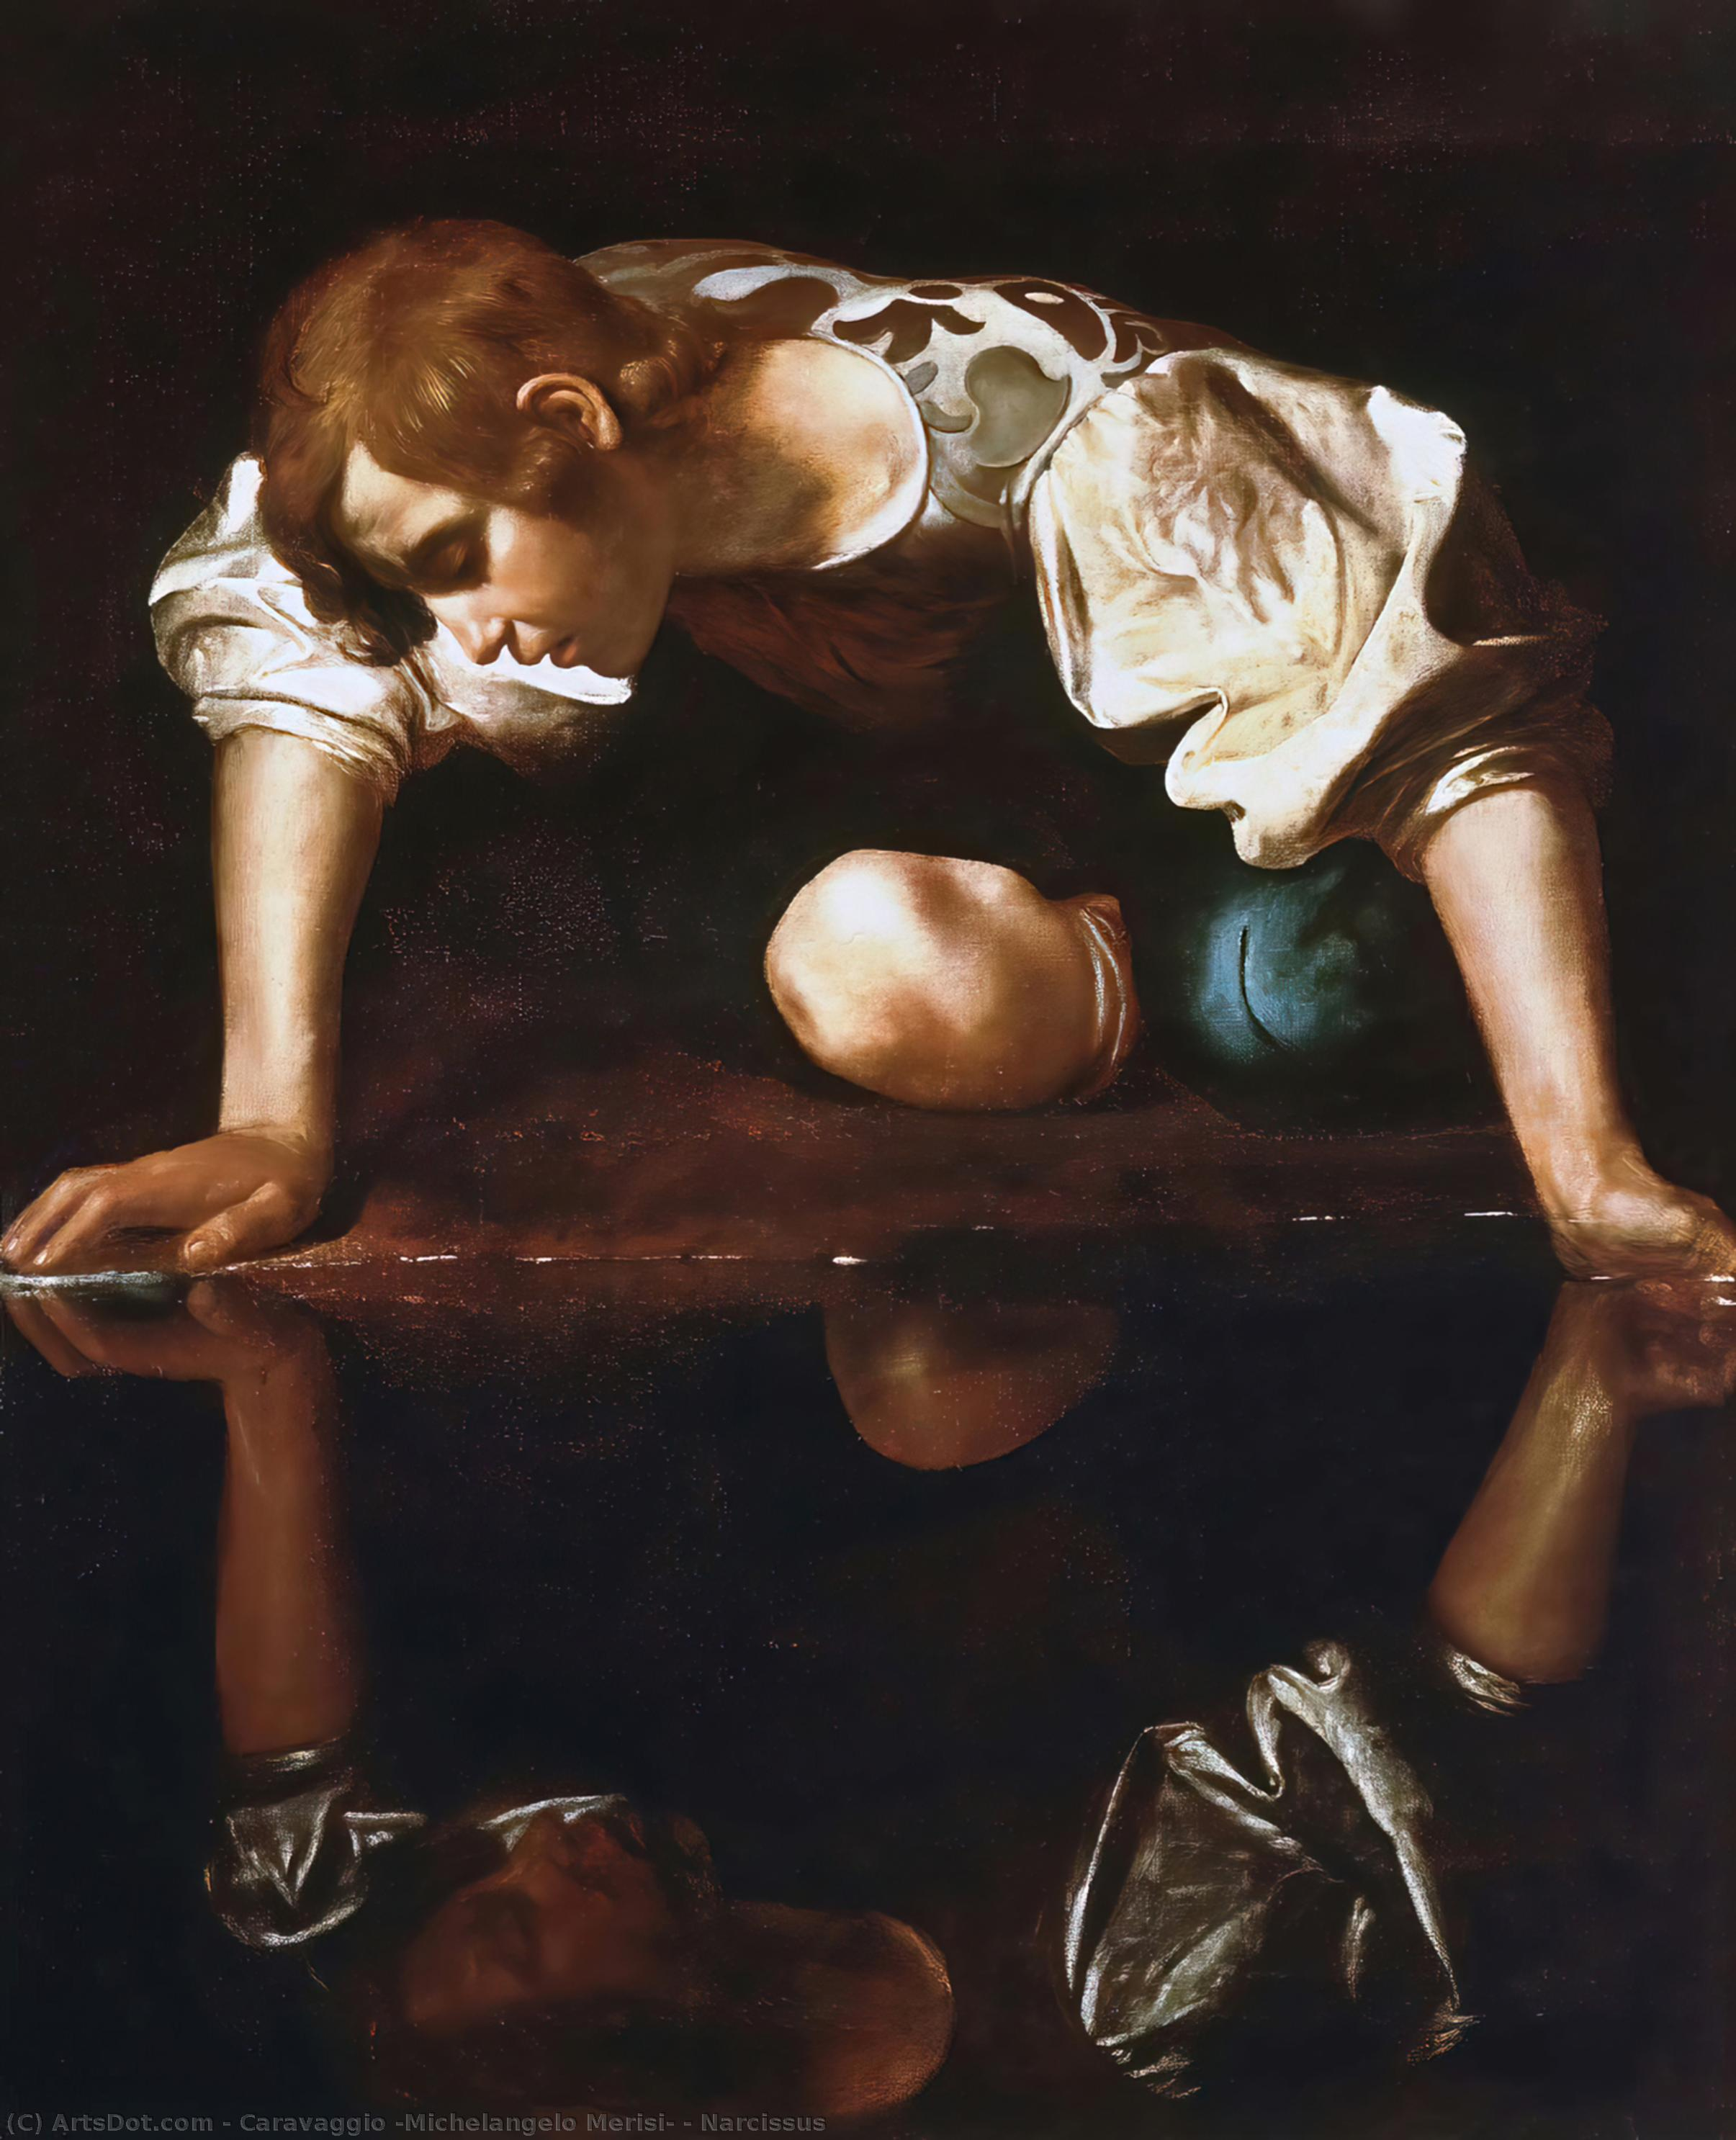 Narcissus, Oil On Canvas by Caravaggio (Michelangelo Merisi) (1571-1610, Spain)